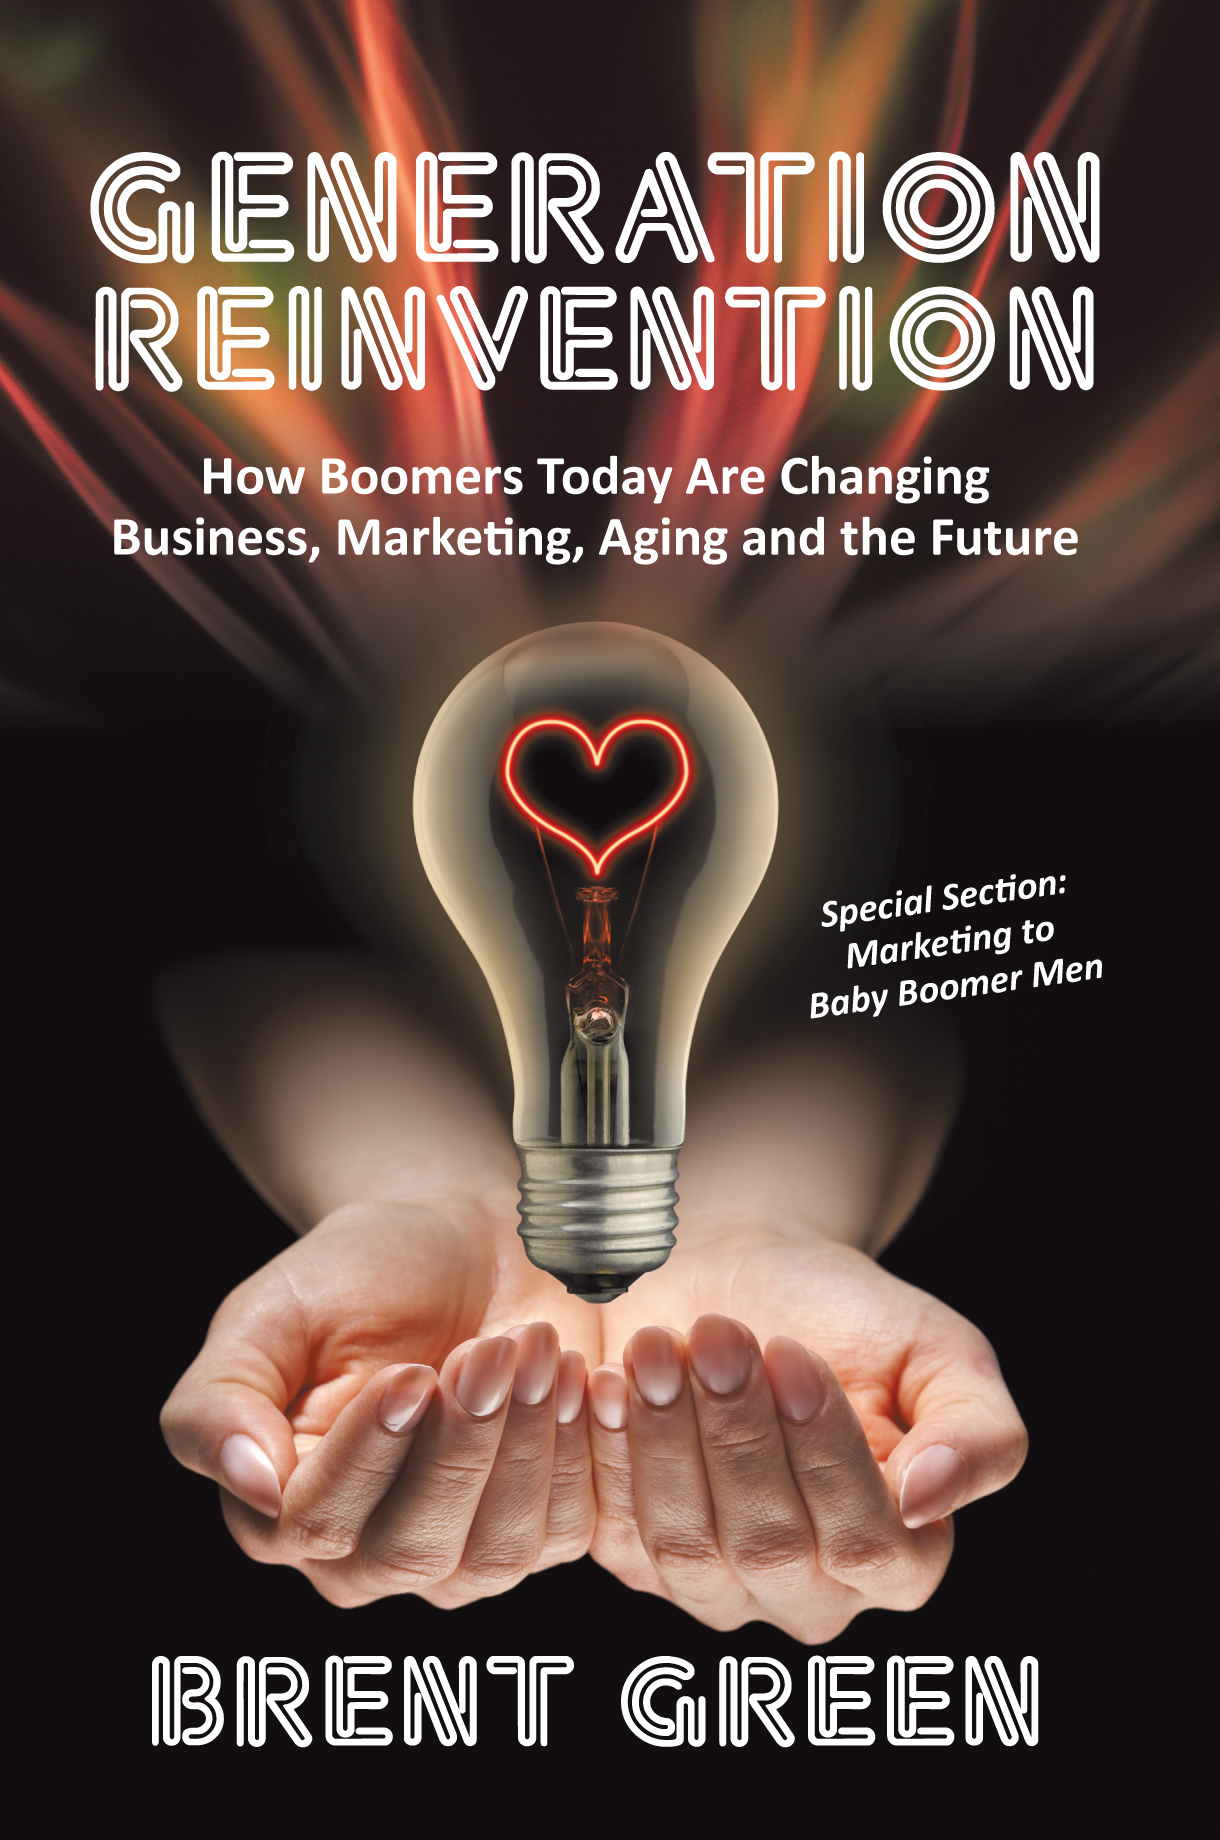 Generation Reinvention by Brent Green